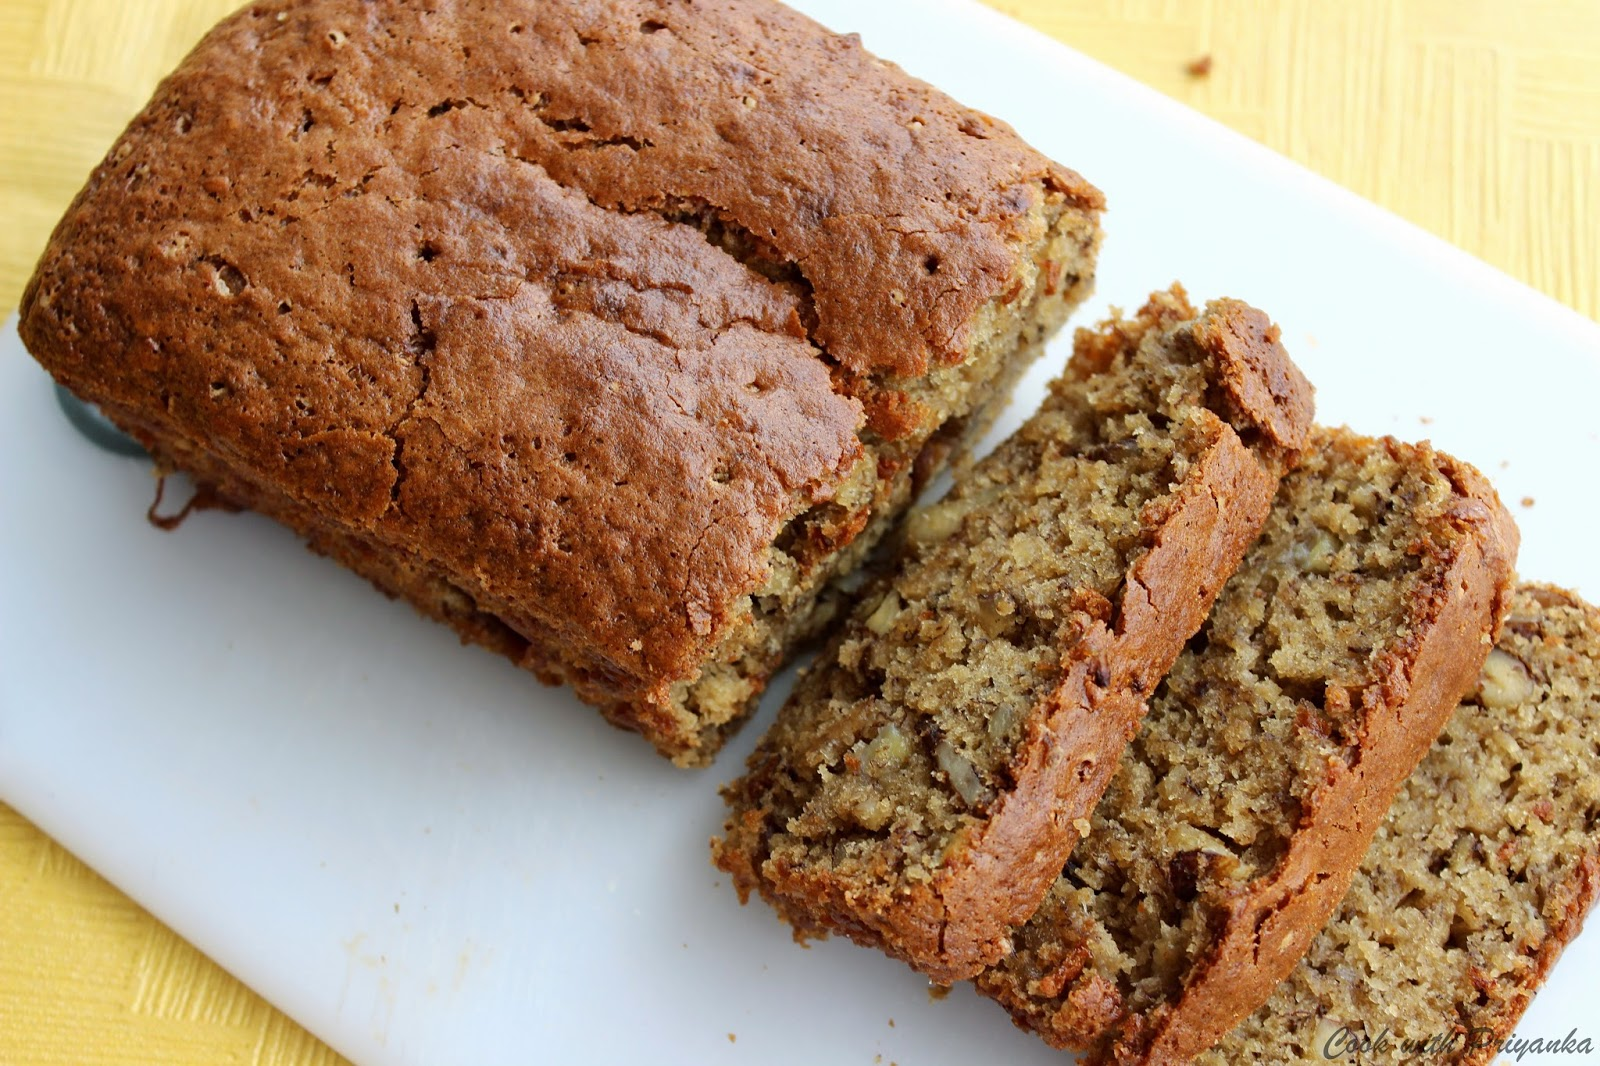 http://cookwithpriyankavarma.blogspot.co.uk/2014/05/banana-walnut-cake-eggless_20.html